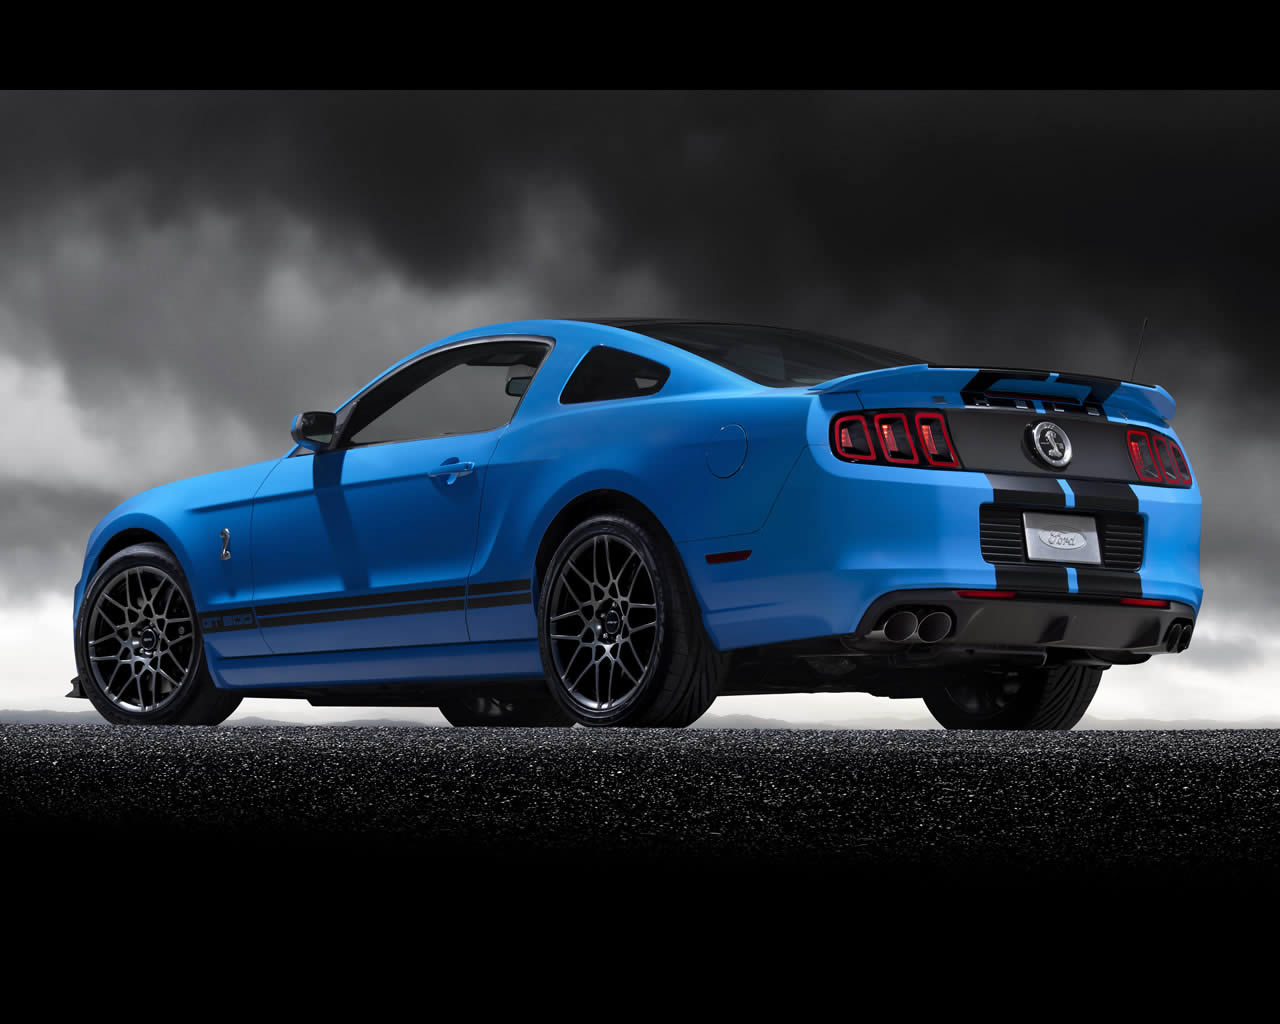 Ford Mustang Shelby Gt500 V8 Supercharged 2013